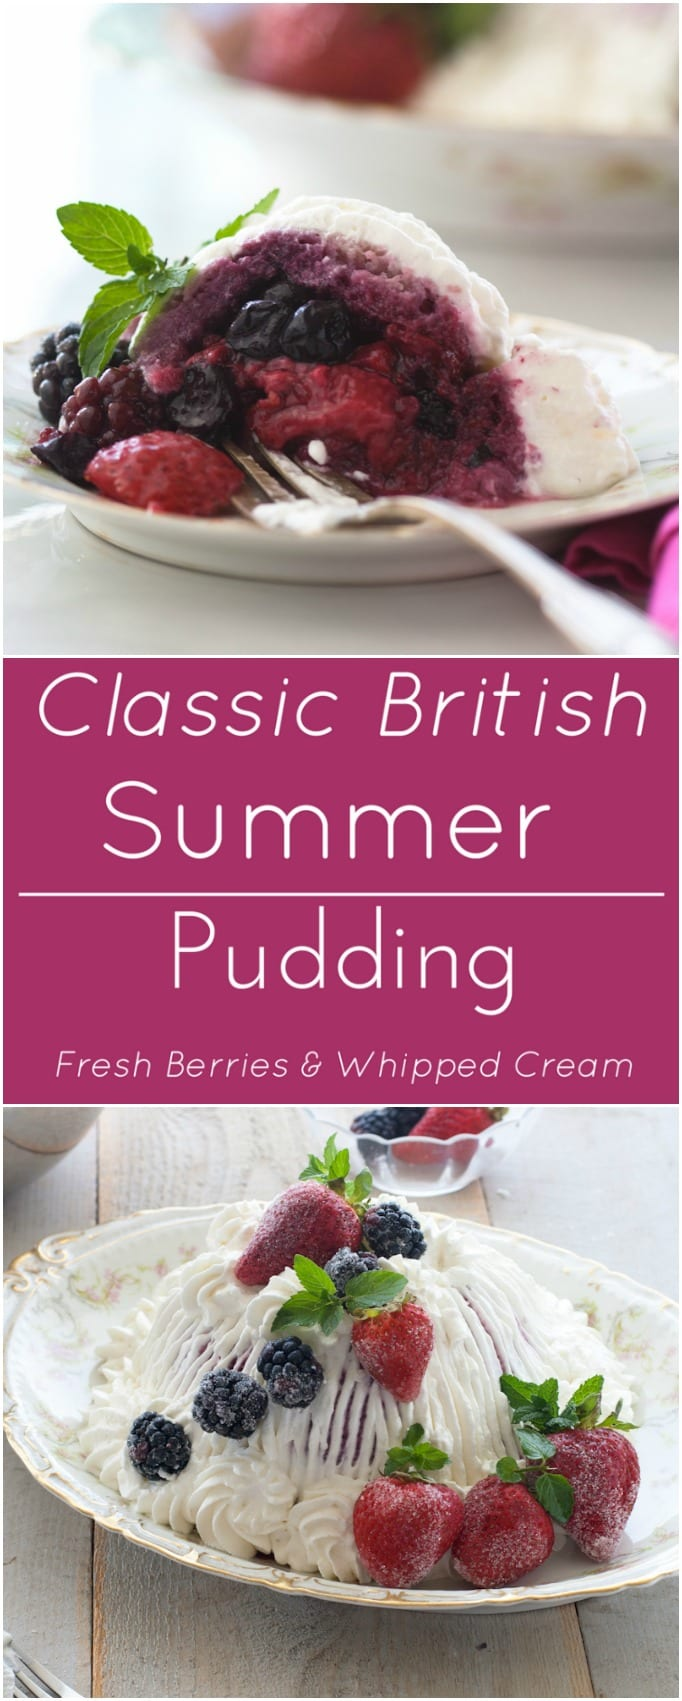 Classic British Summer pudding, with fresh berries and whipped cream.